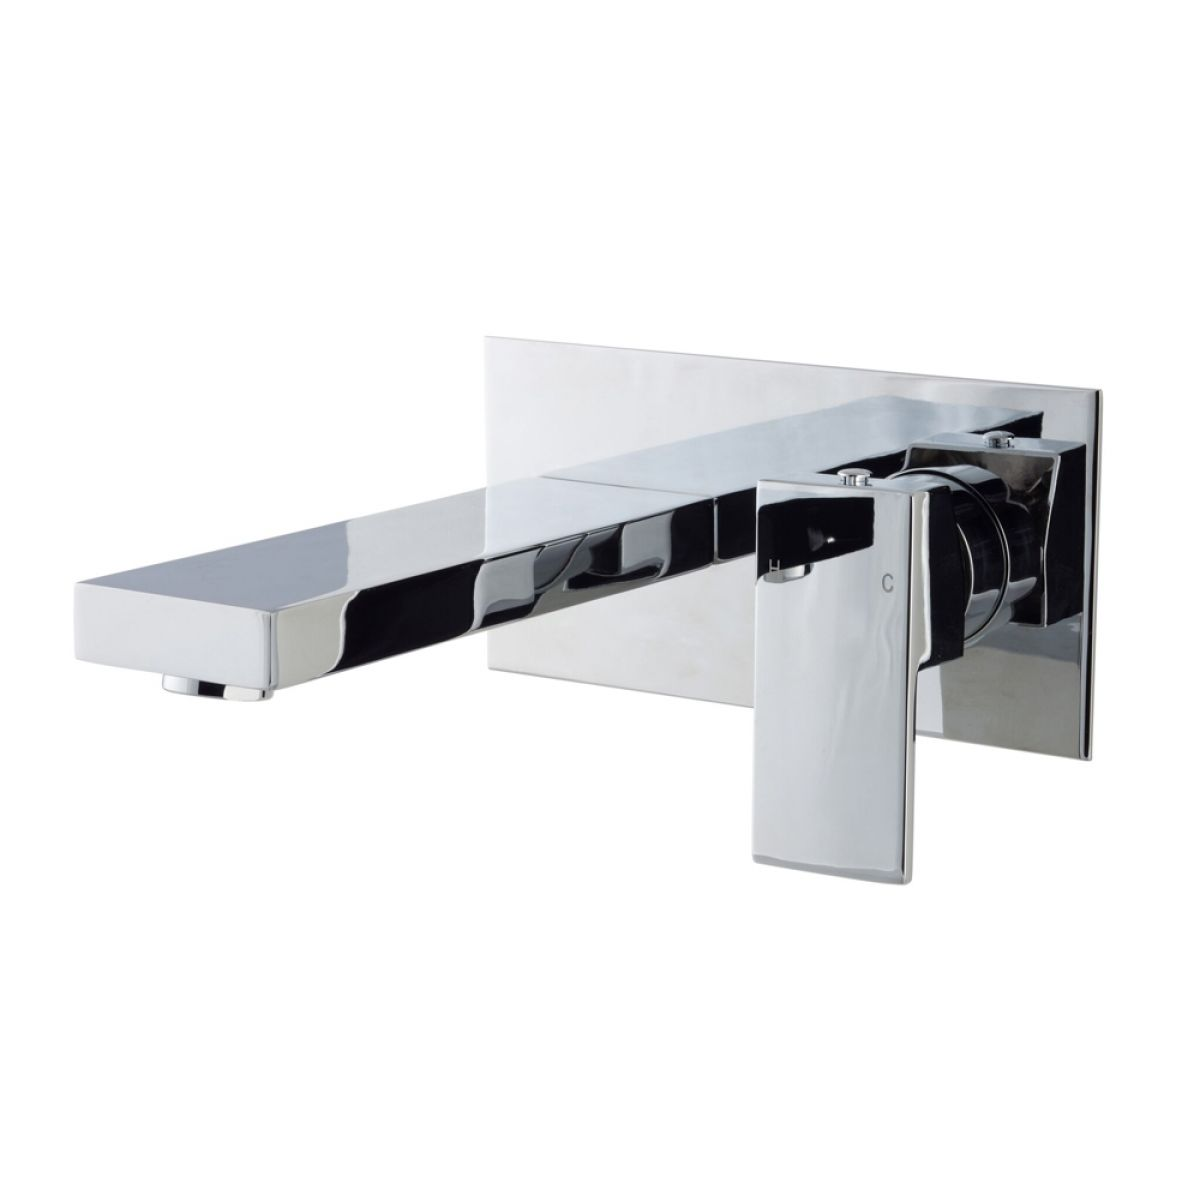 Zenith Form Wall Mounted Bath Filler Tap